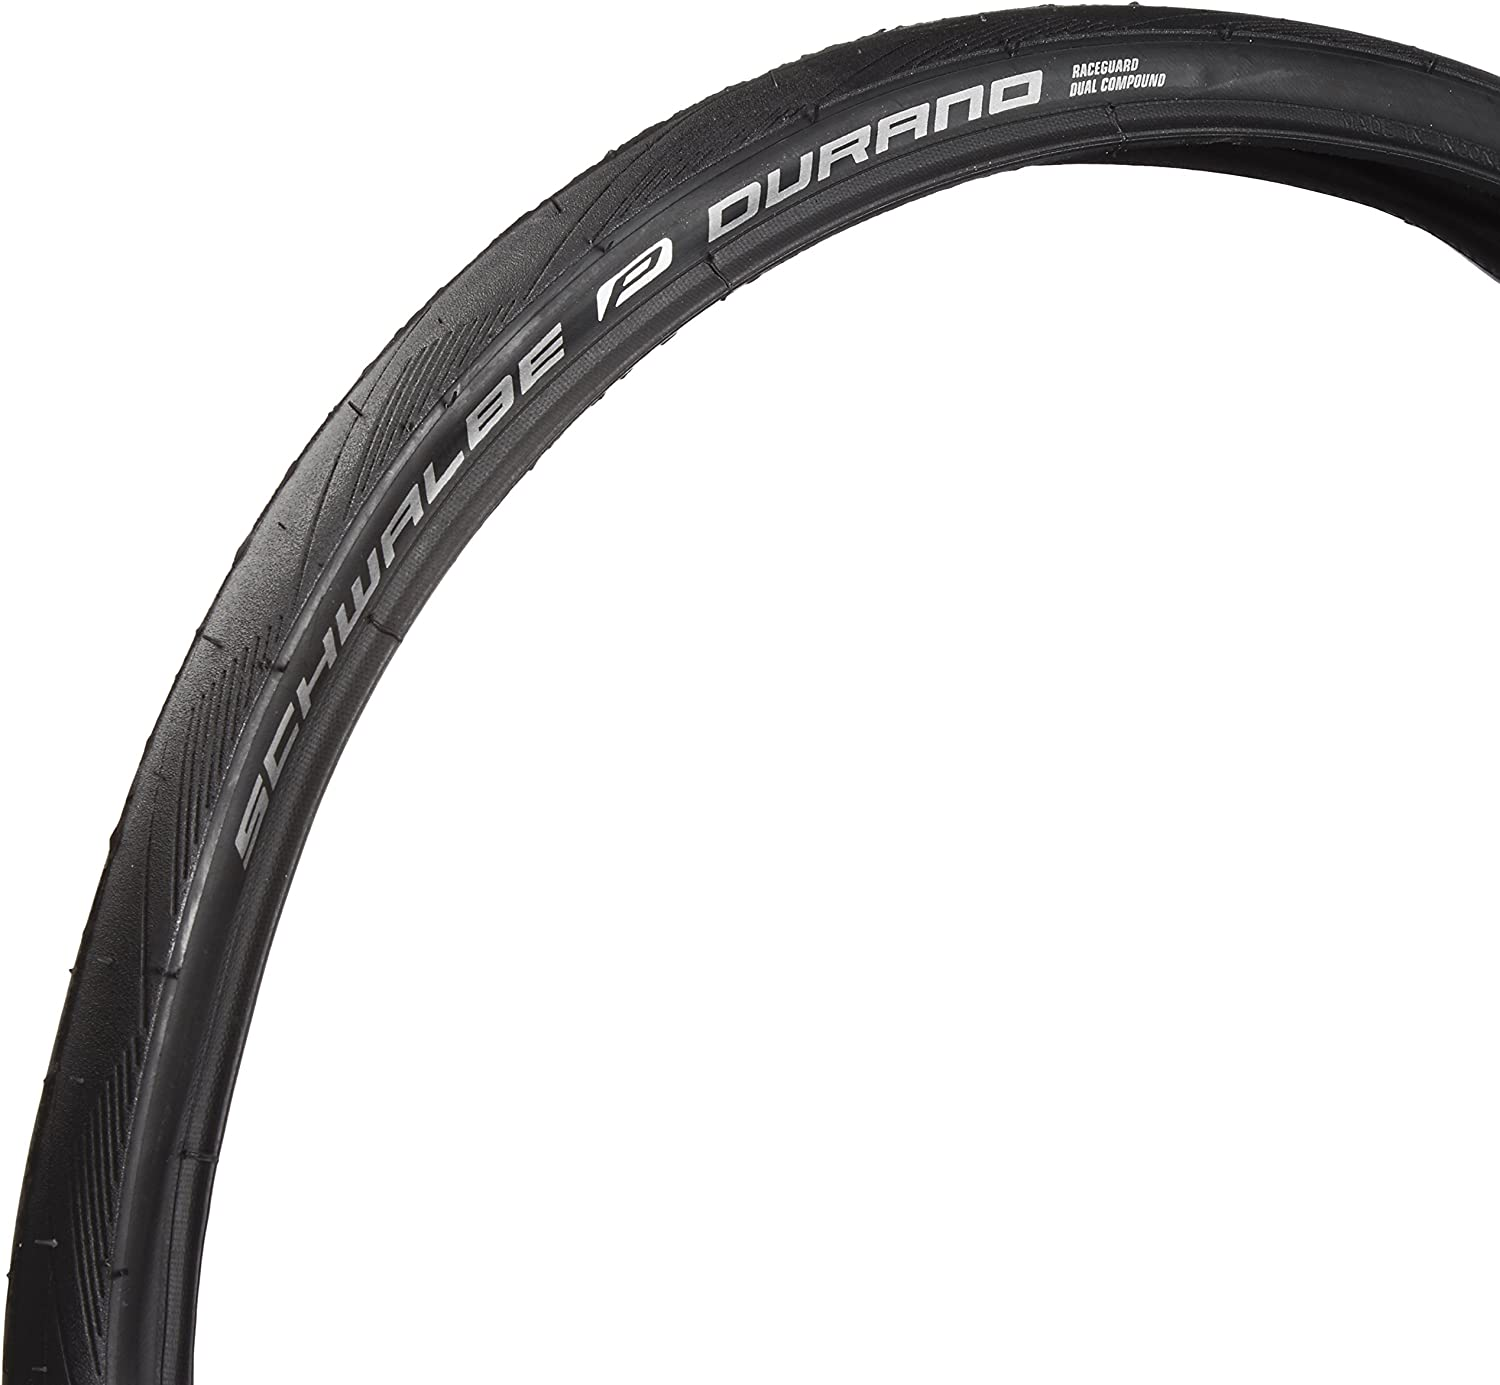 Schwalbe Durano Tyre Tire 20 x 1.1 406 Tyre RaceGuard foldable